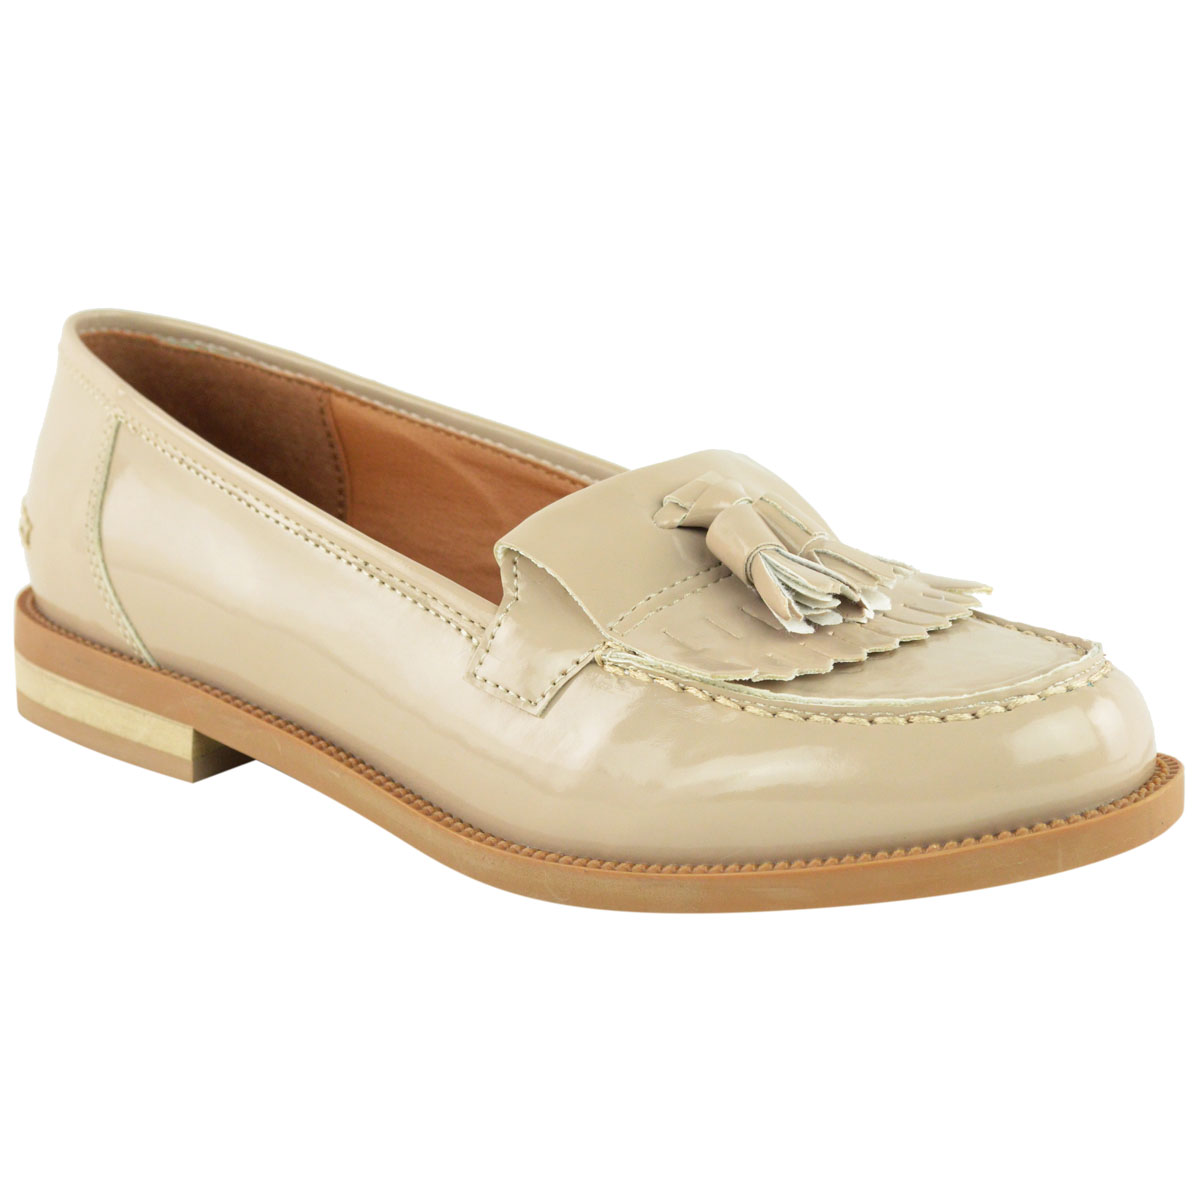 Shop thousands of latest stylist women's flats at coolmfilehj.cf, including cheap Shopping Protection · Factory Price · Newest Trends · Free ShippingTypes: Dresses, Shoes, Blouses, Coats & Jackets.